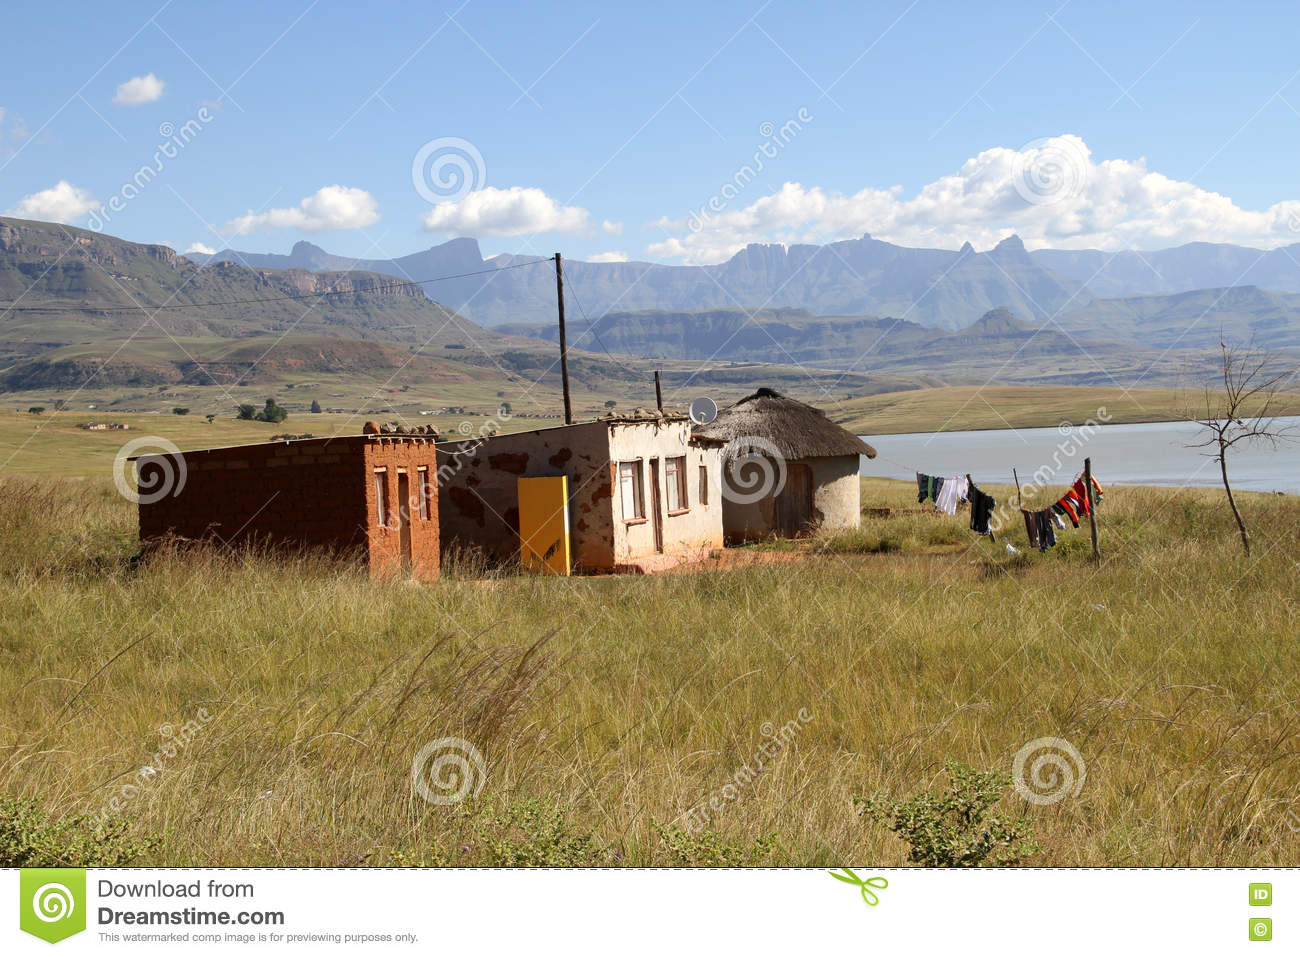 qwaqwa dating sites The employee conduct policy of the distribution: all employees of _____ name of local church location of site for a purpose to be immoral or against the law.